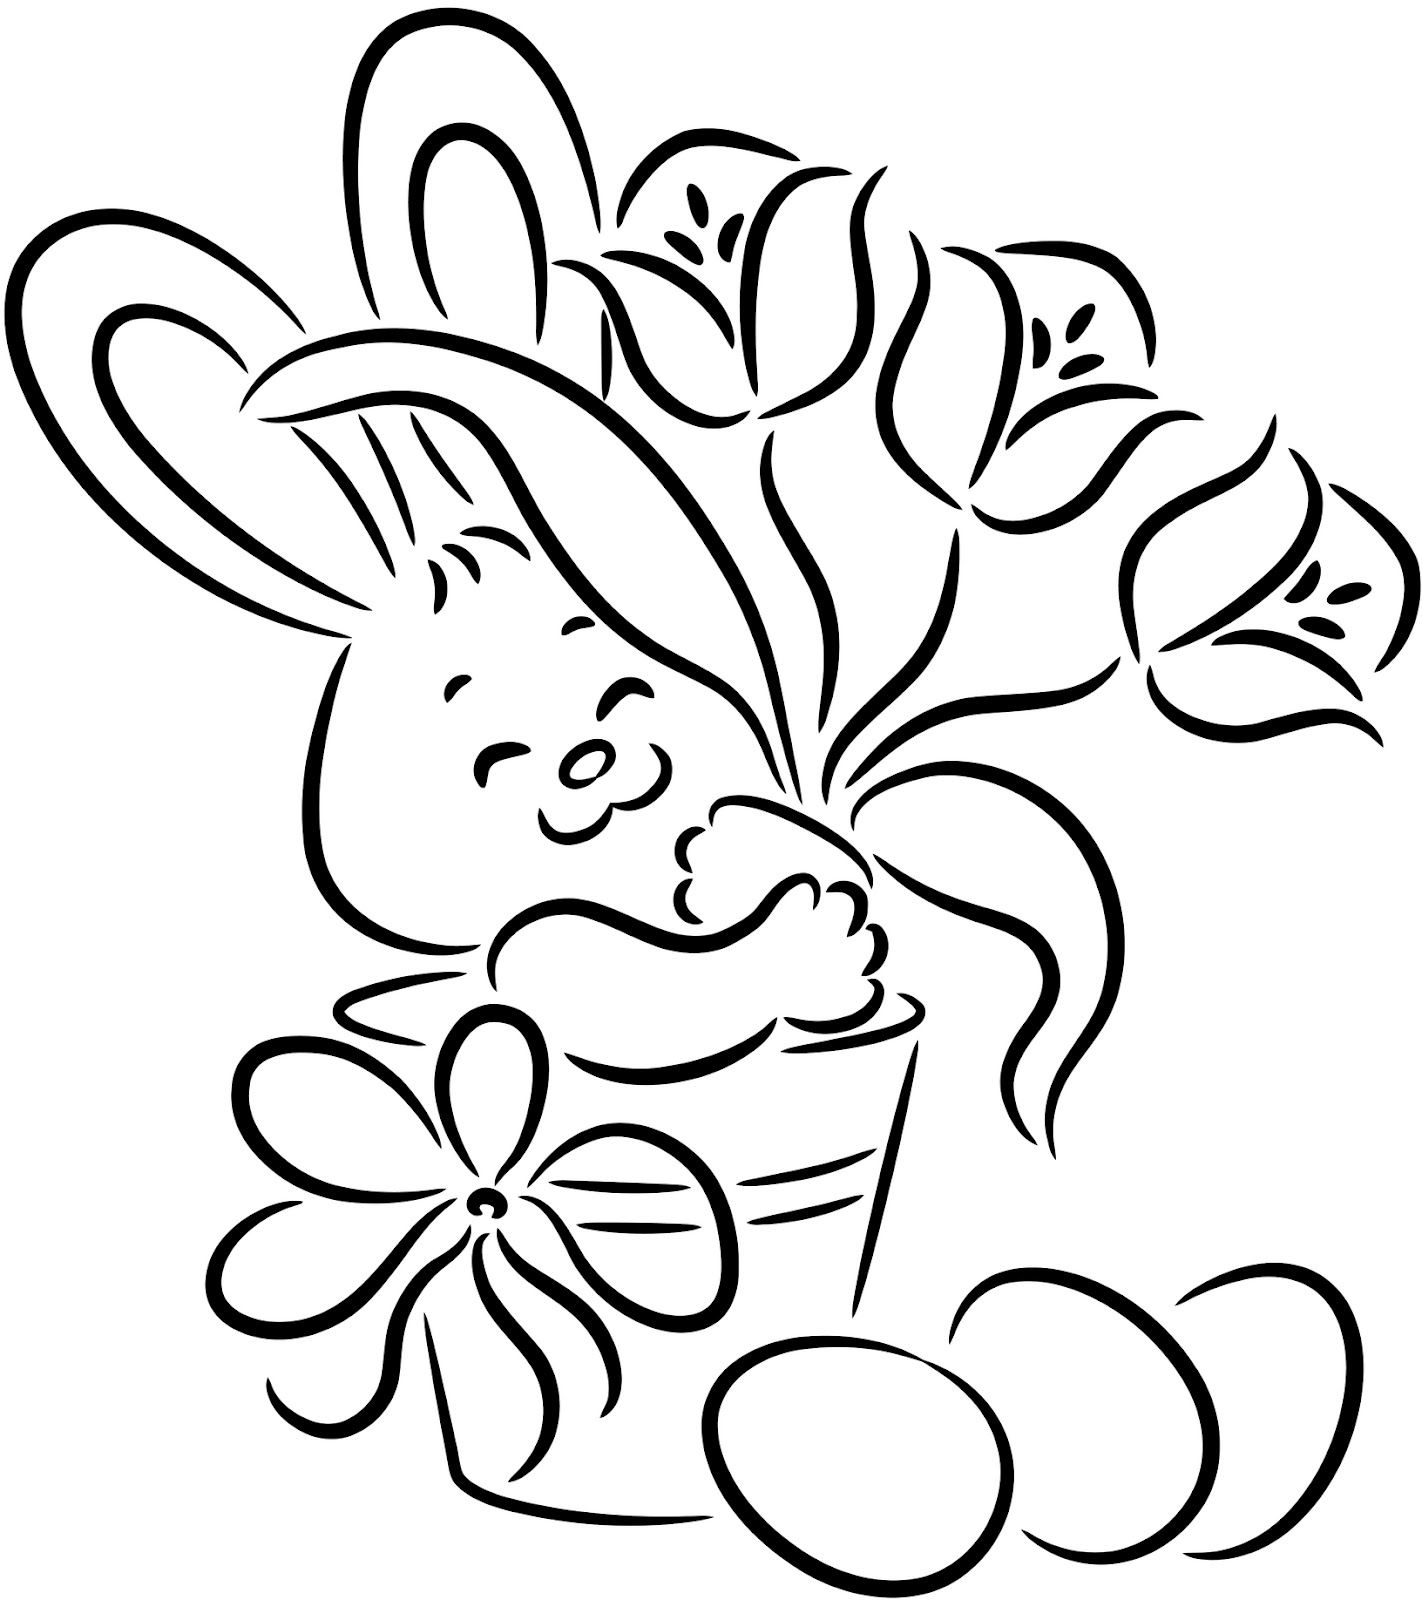 coloring pages of bunny rabbits 16 easter bunny coloring pages gtgt disney coloring pages rabbits of bunny pages coloring